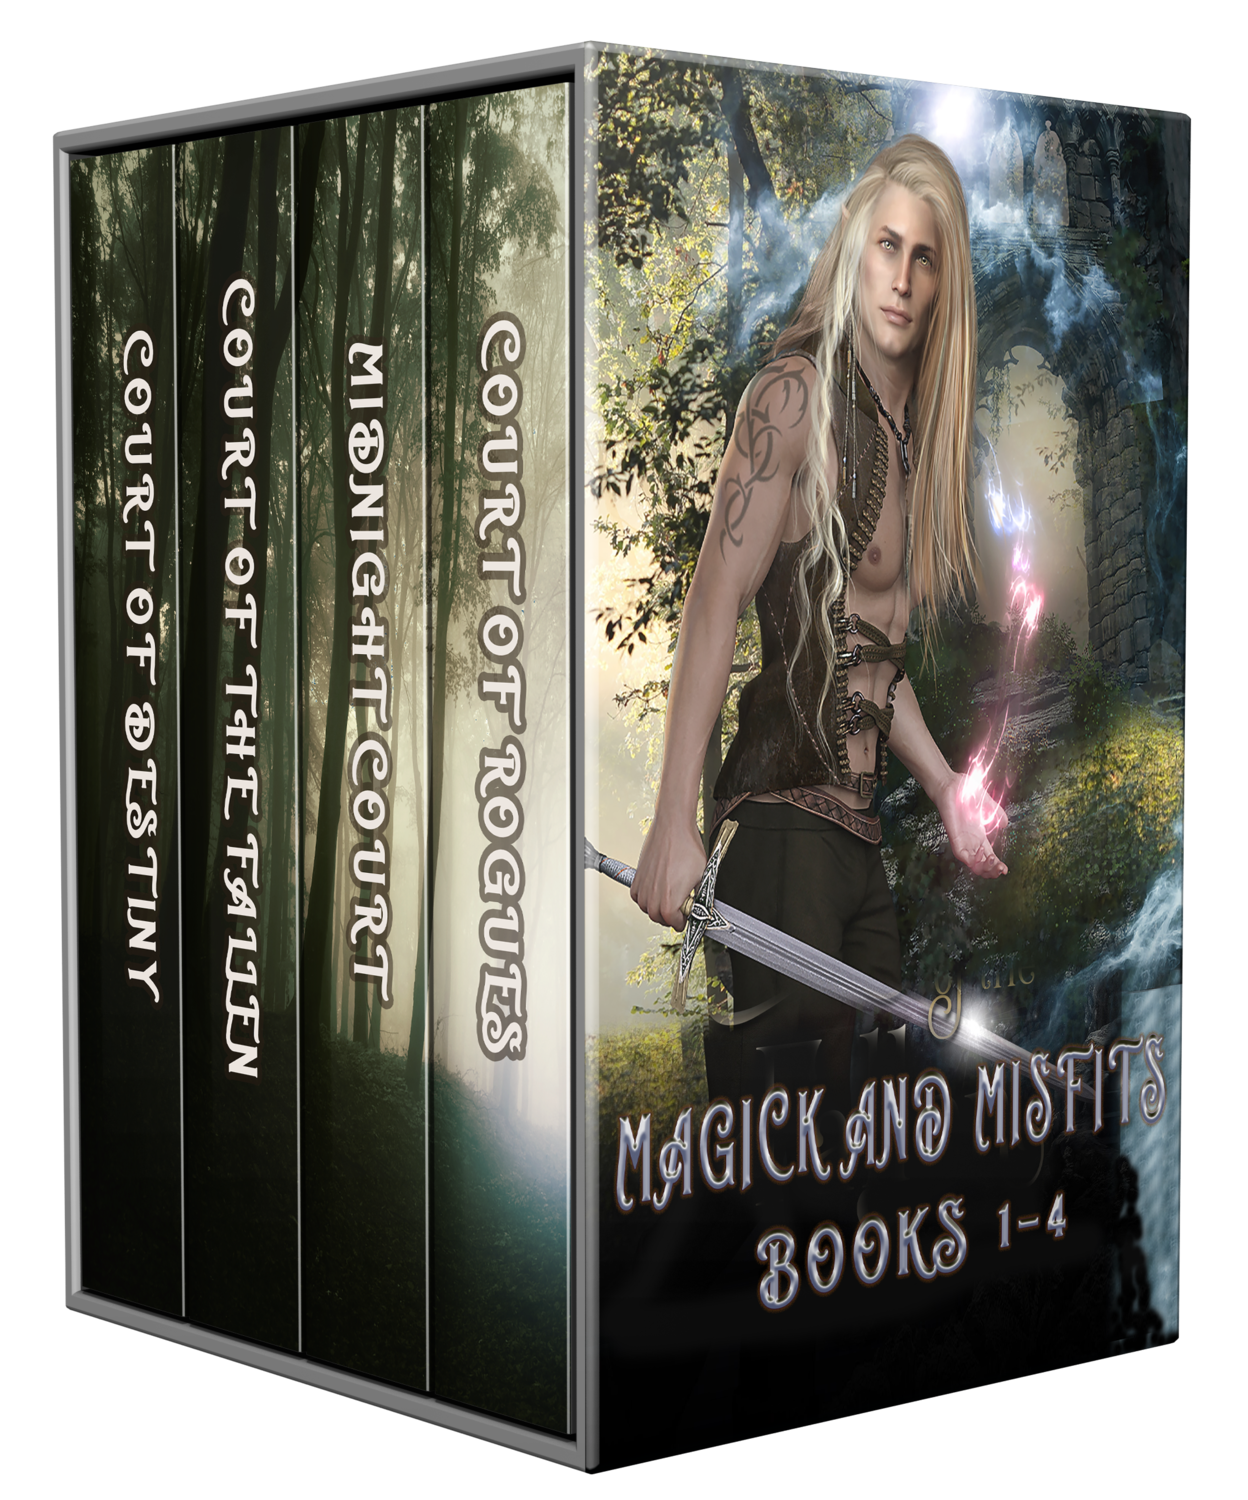 Magick and Misfits, Books 1-4